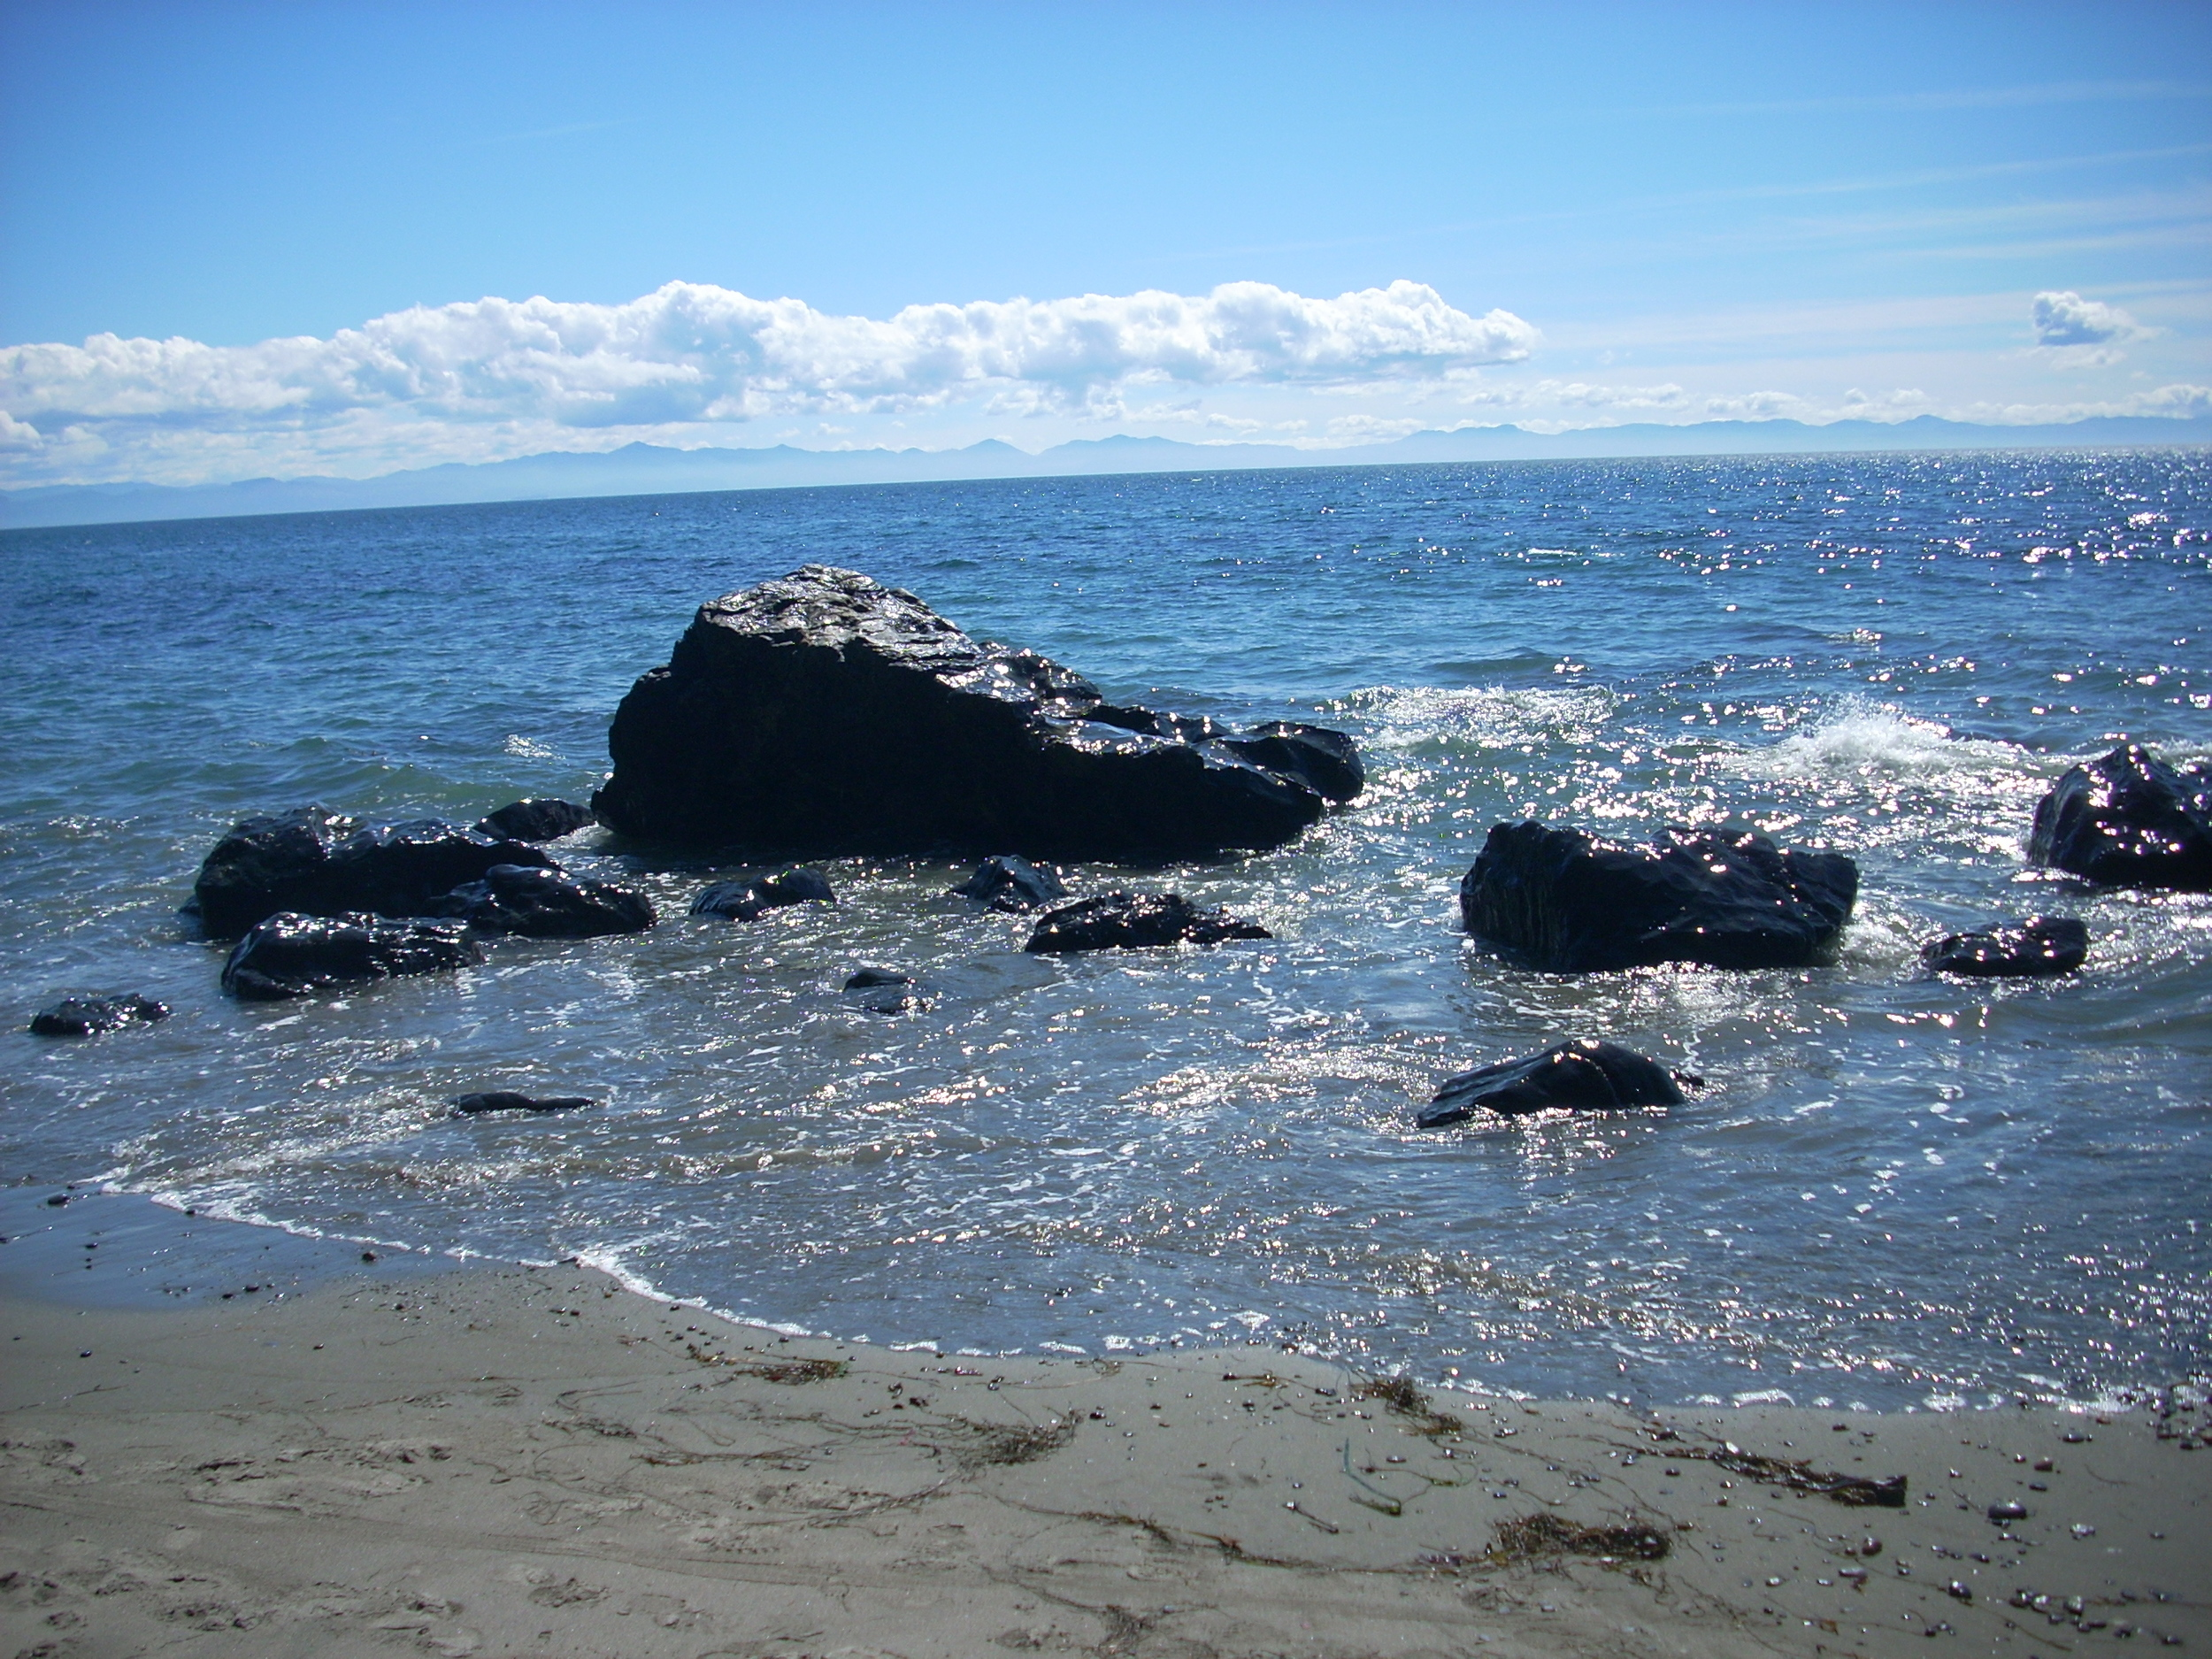 One of our beautiful beaches here on Vancouver Island Photo Credit: Michelle Somers